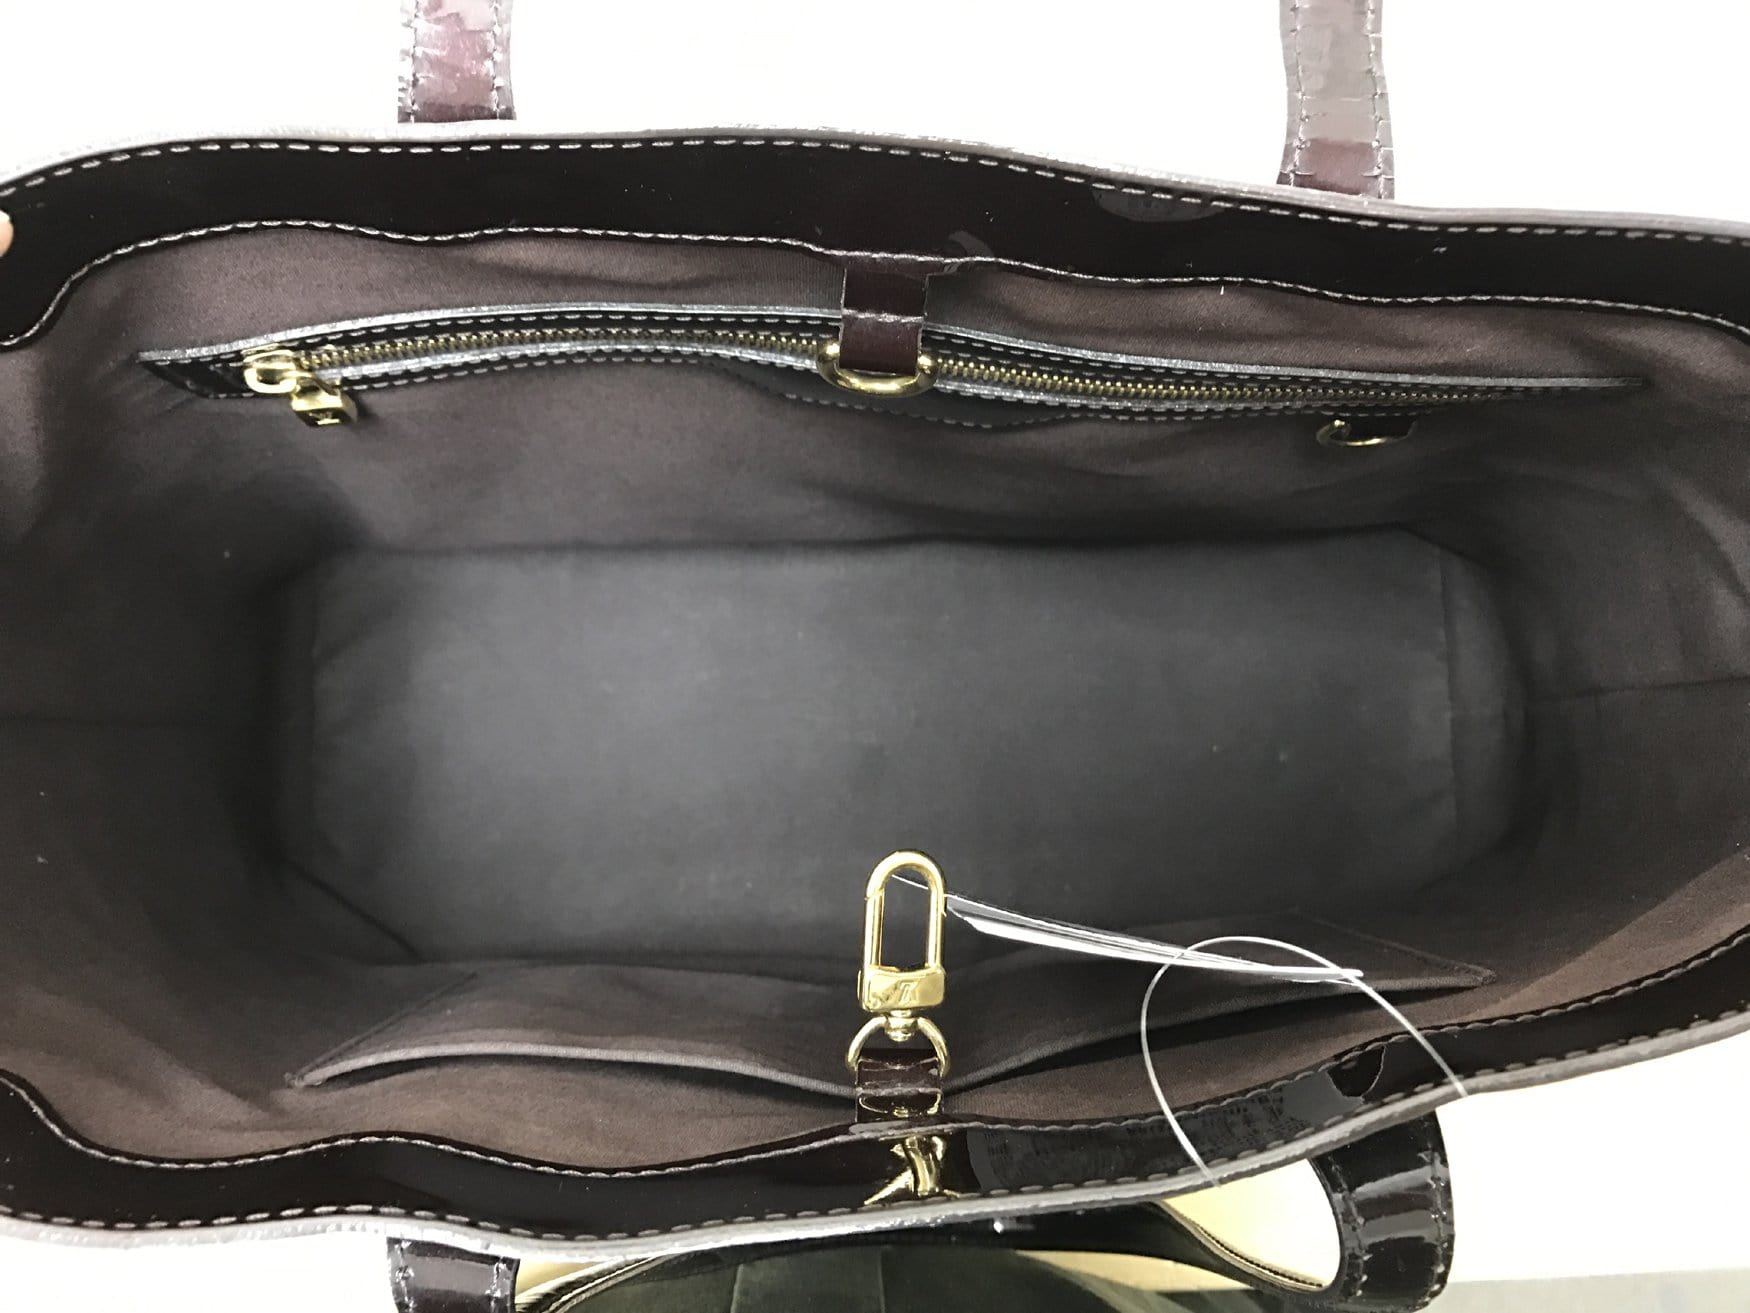 af8e2a7fe61 LOUIS VUITTON Vernis Leather Wilshire GM Satchel Wine Red